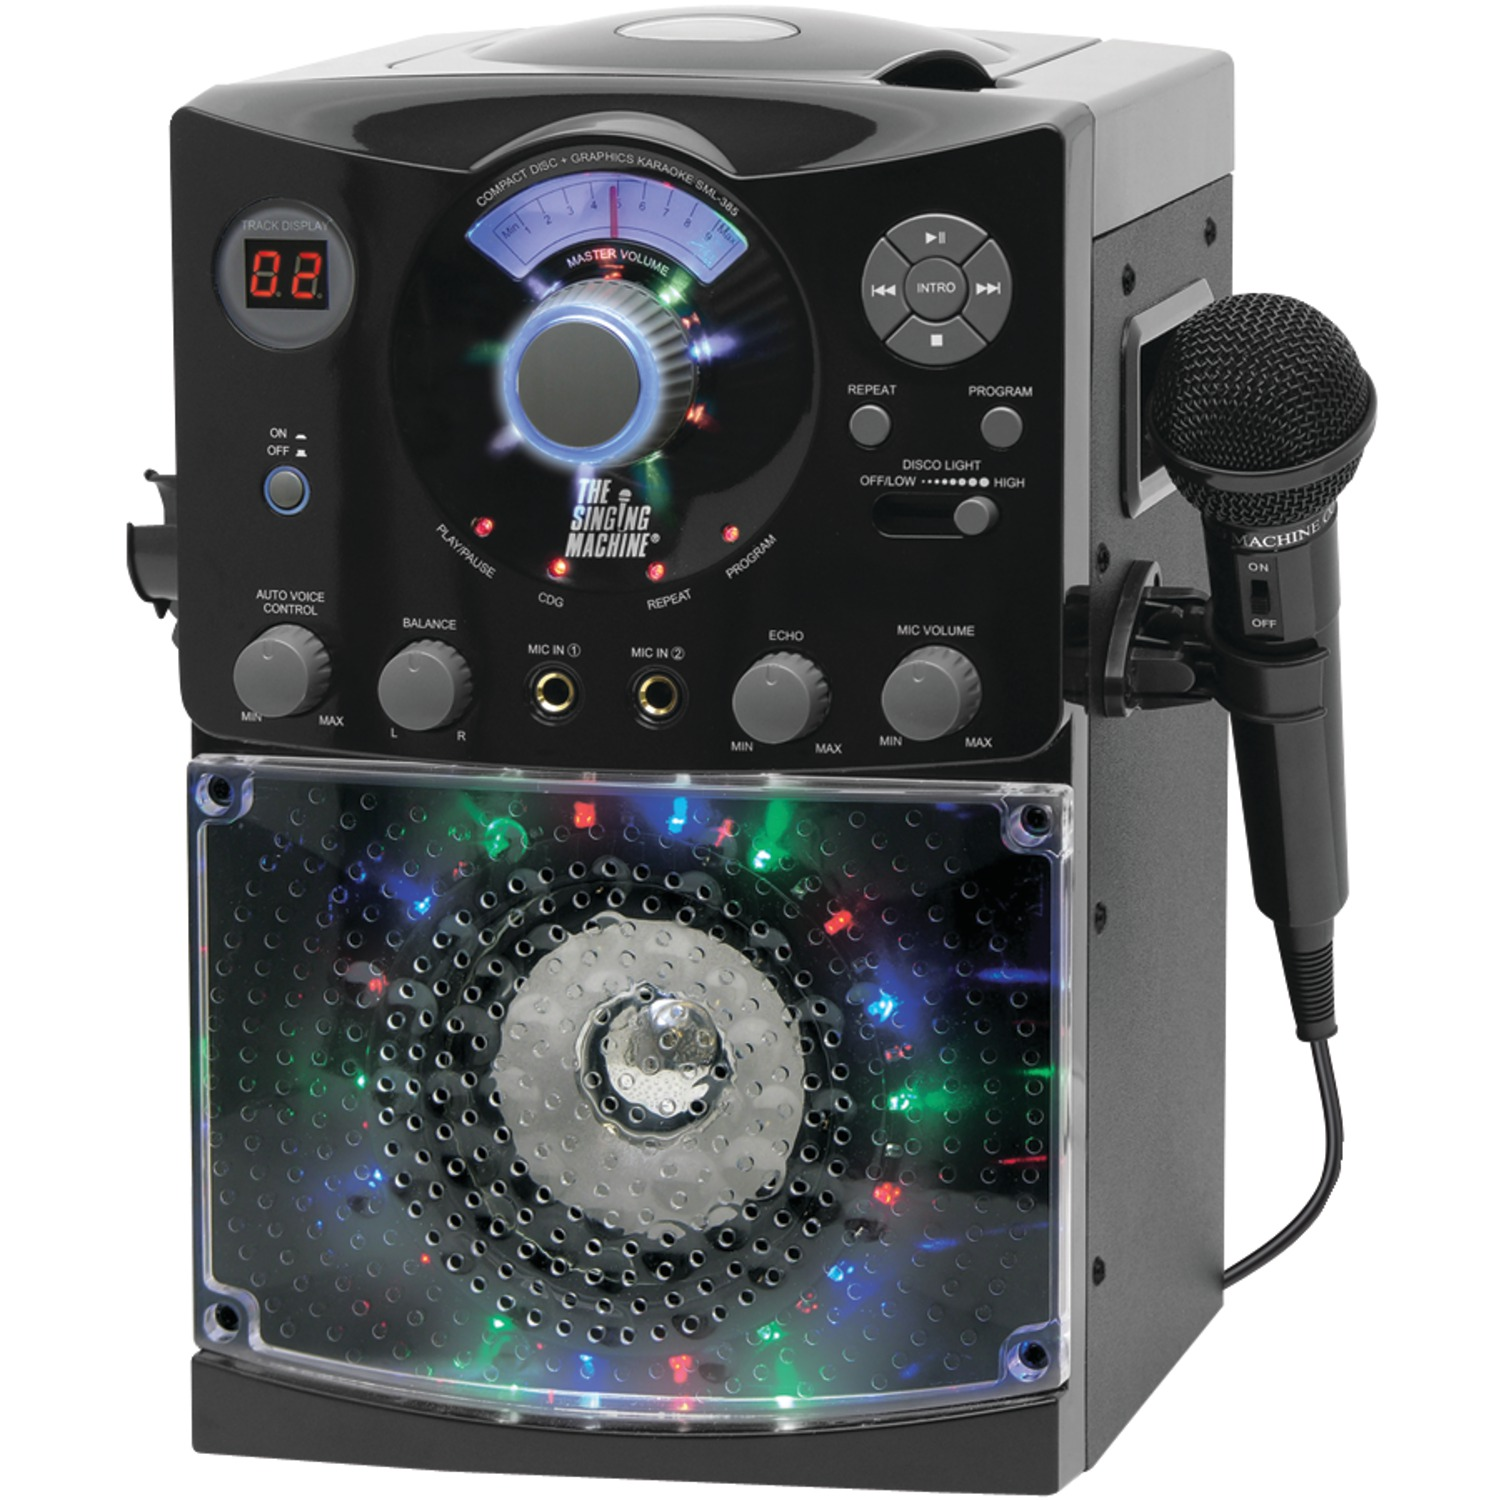 The Singing Machine SML385 Sound & Light Show Karaoke System (Black)